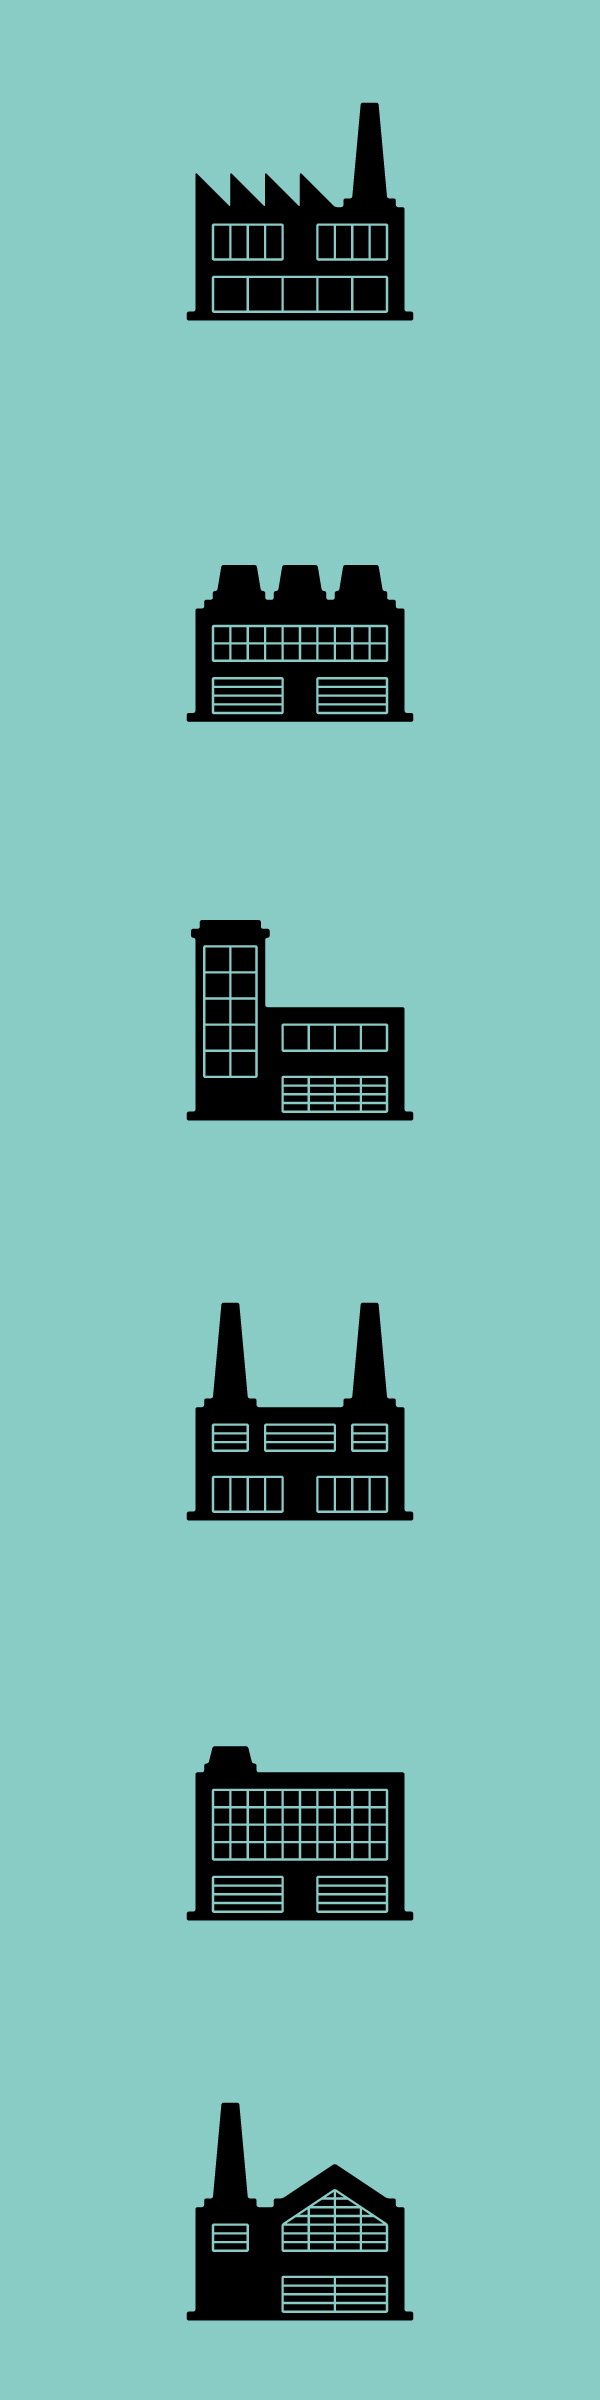 Factories #factory #icons #pictogram